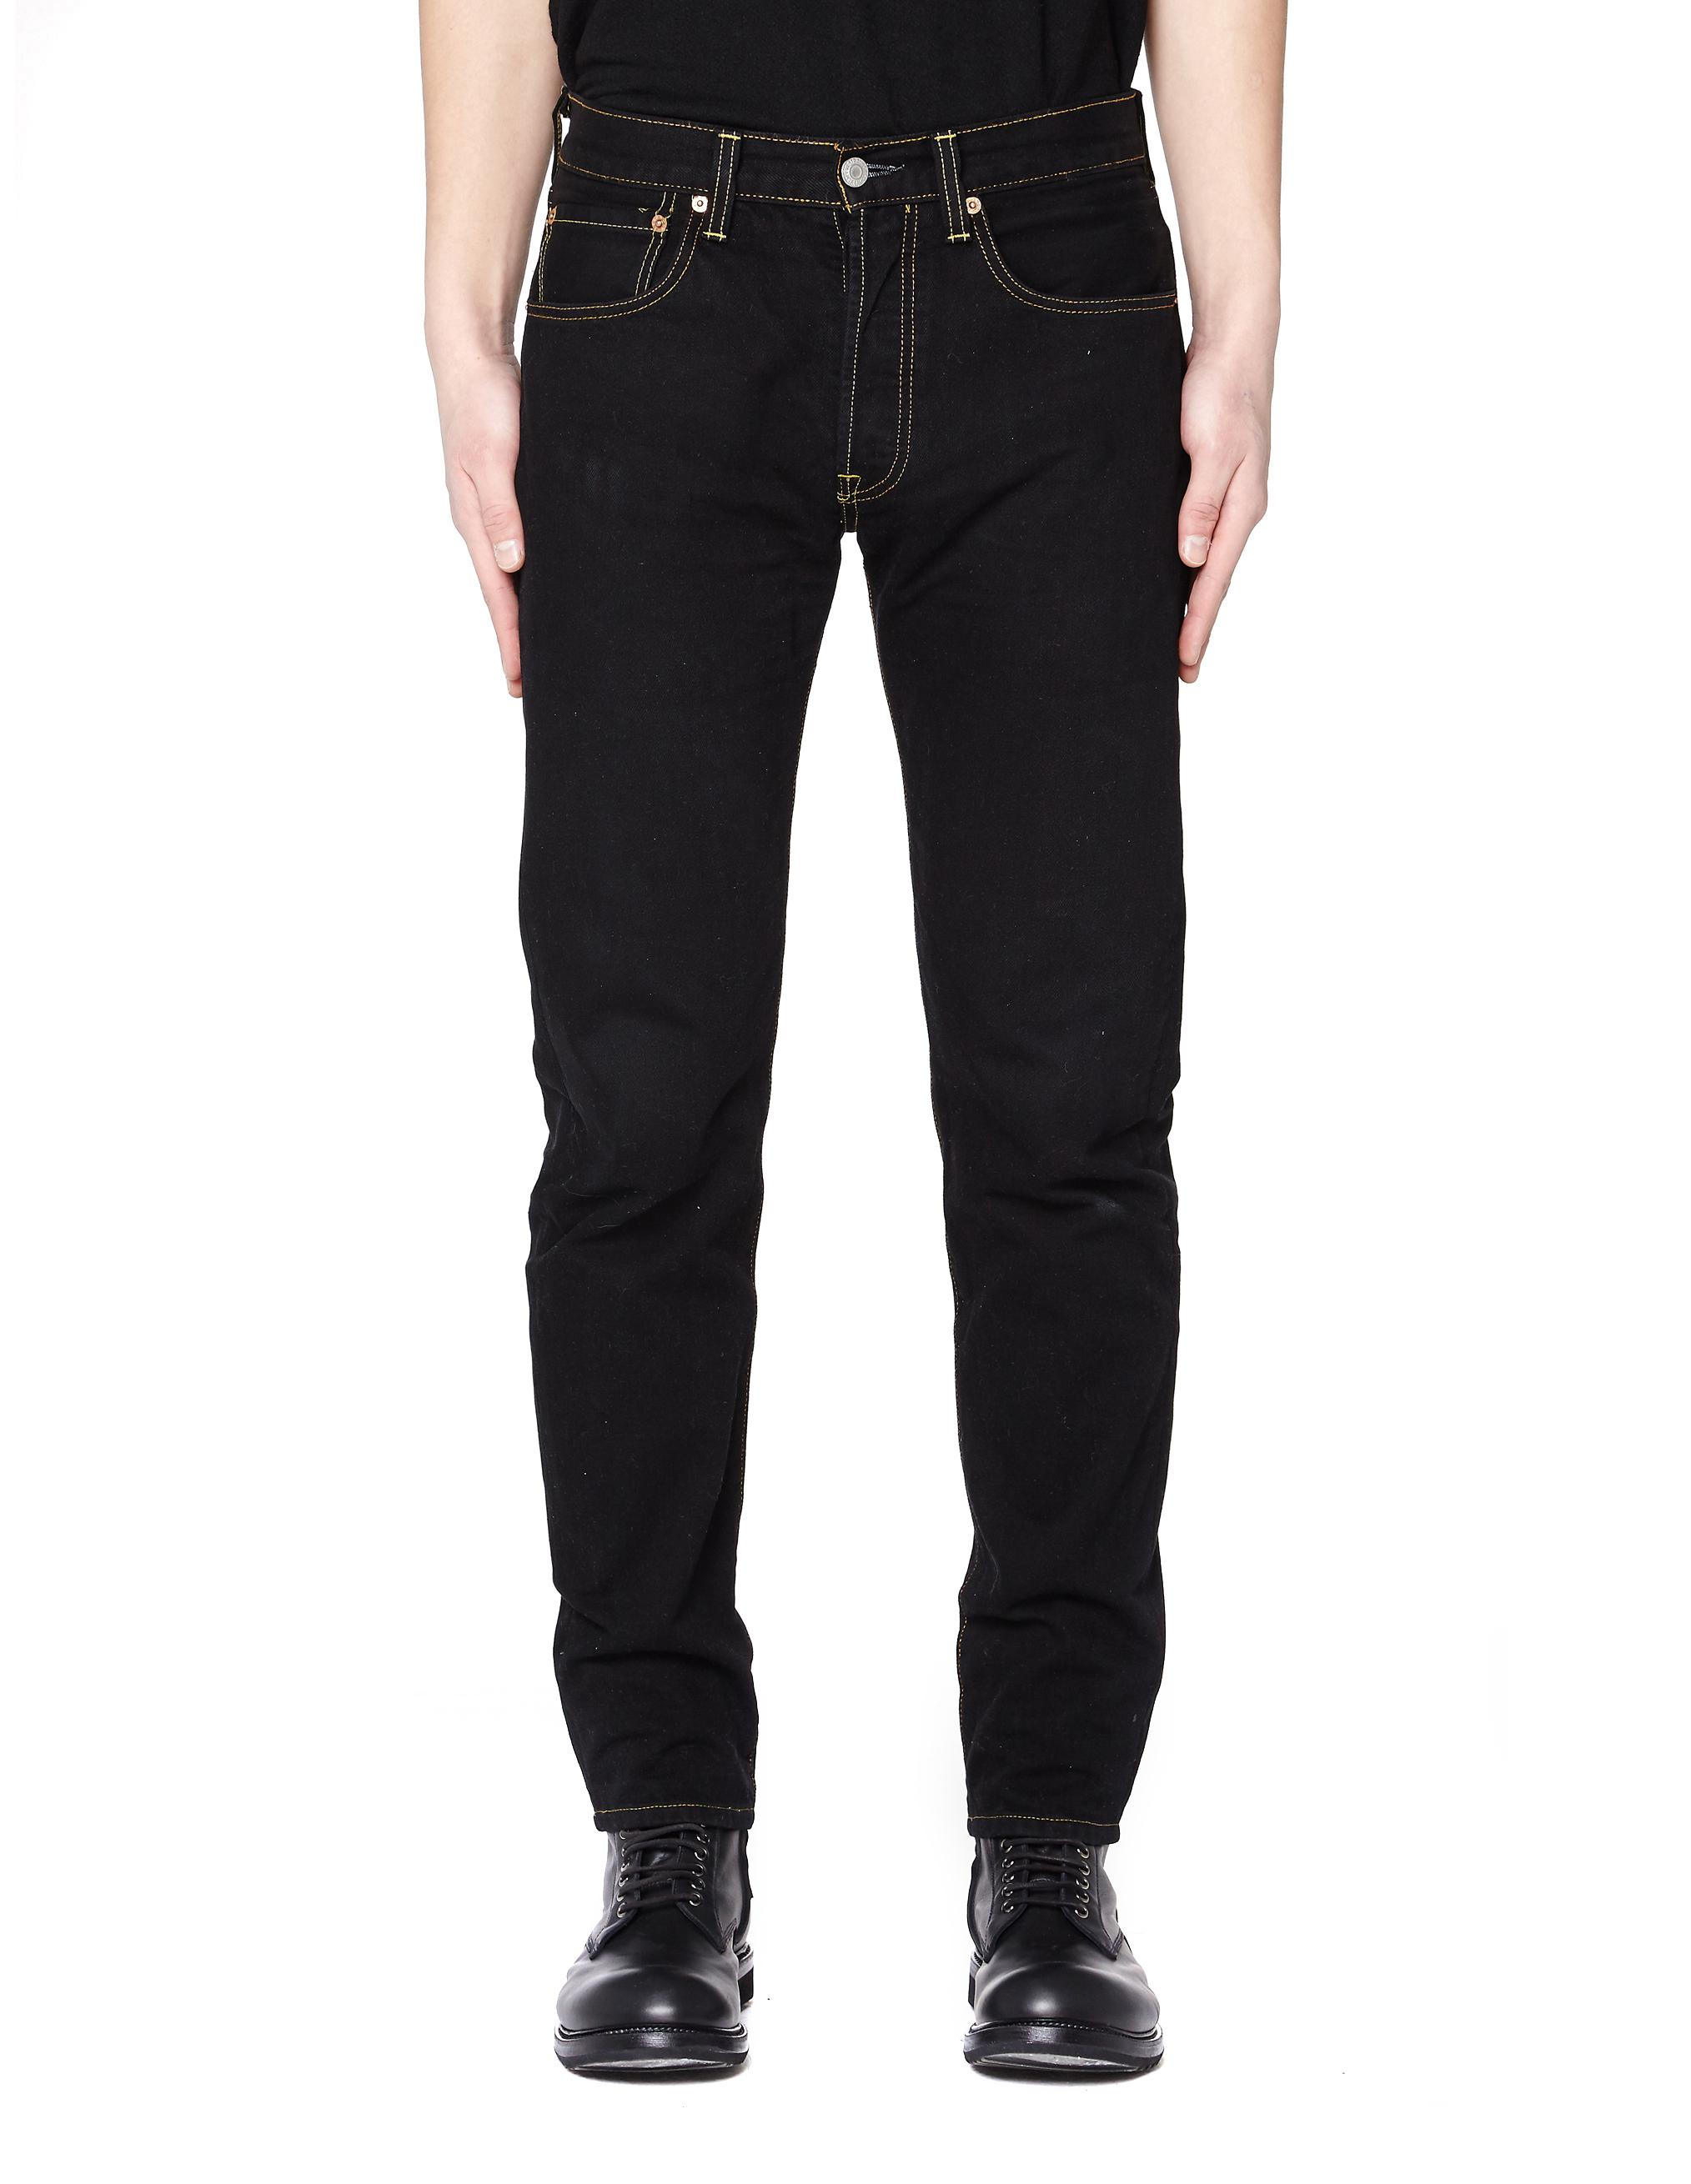 DENIM - Denim trousers Blackyoto lkScNXR